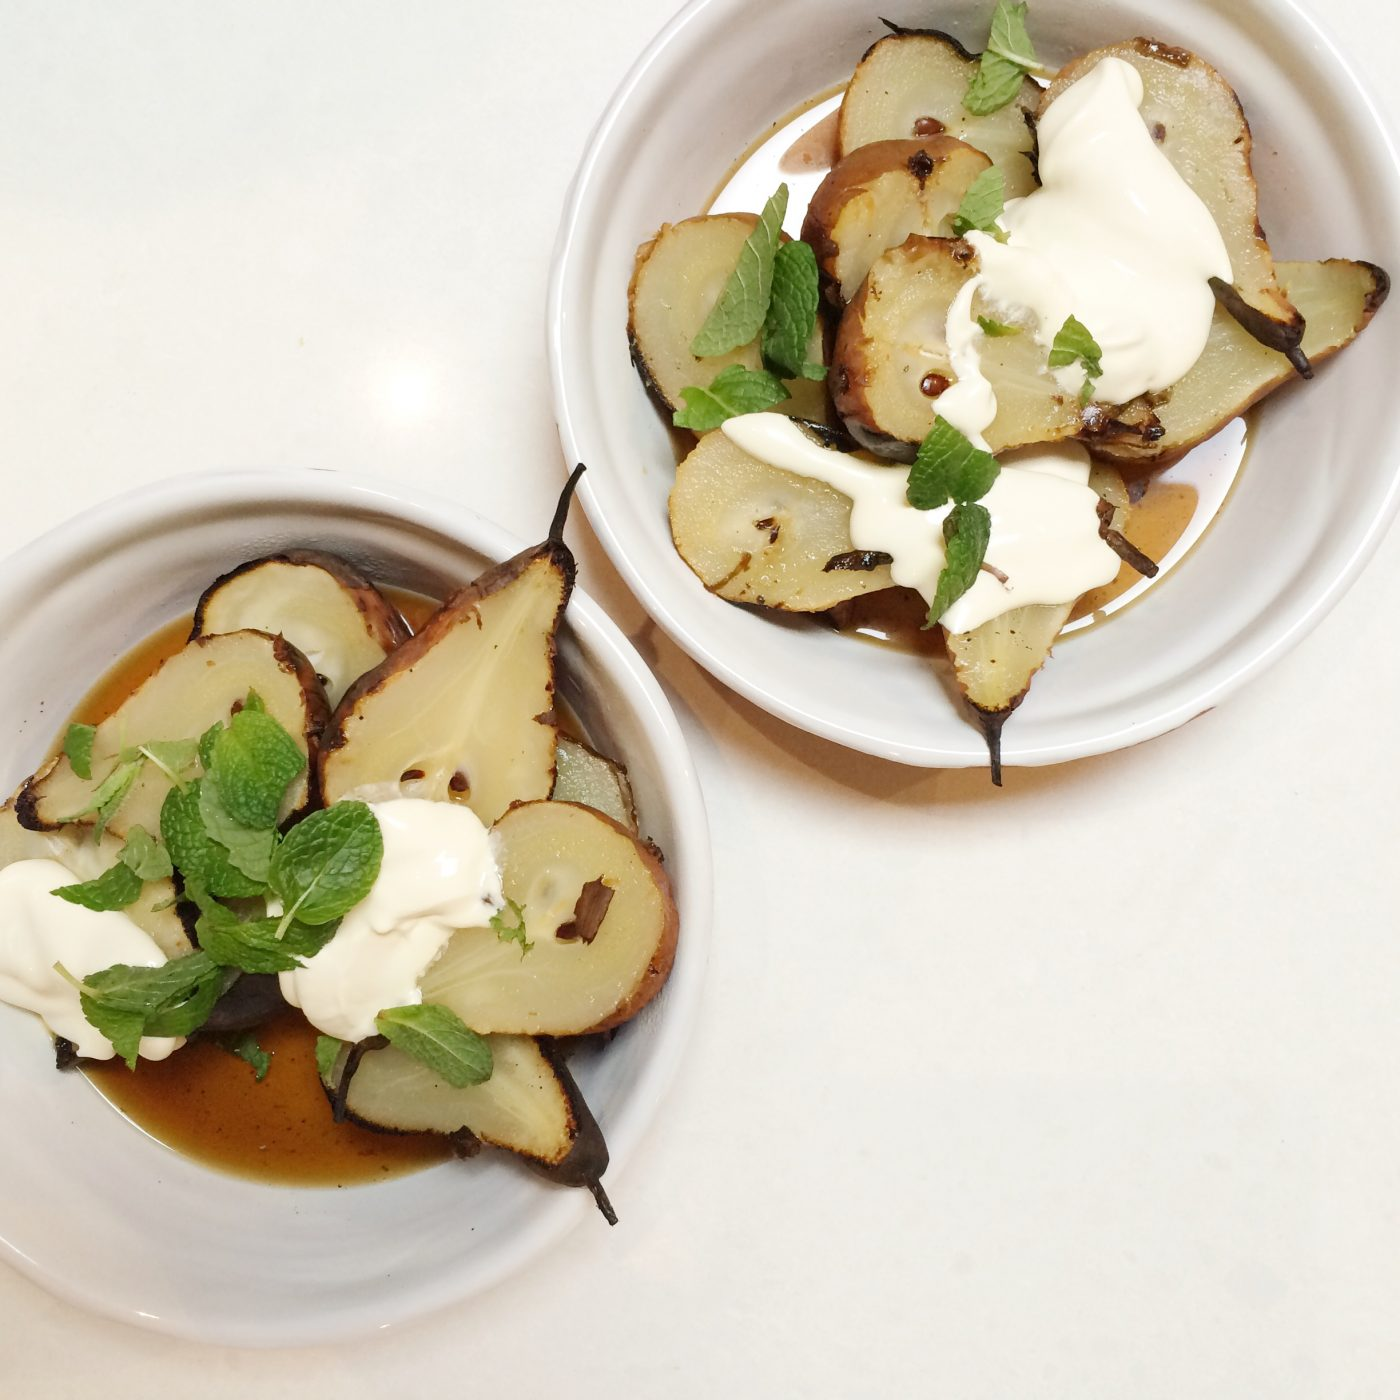 , Barbecued pears recipe and great tips for cooking on the barbecue